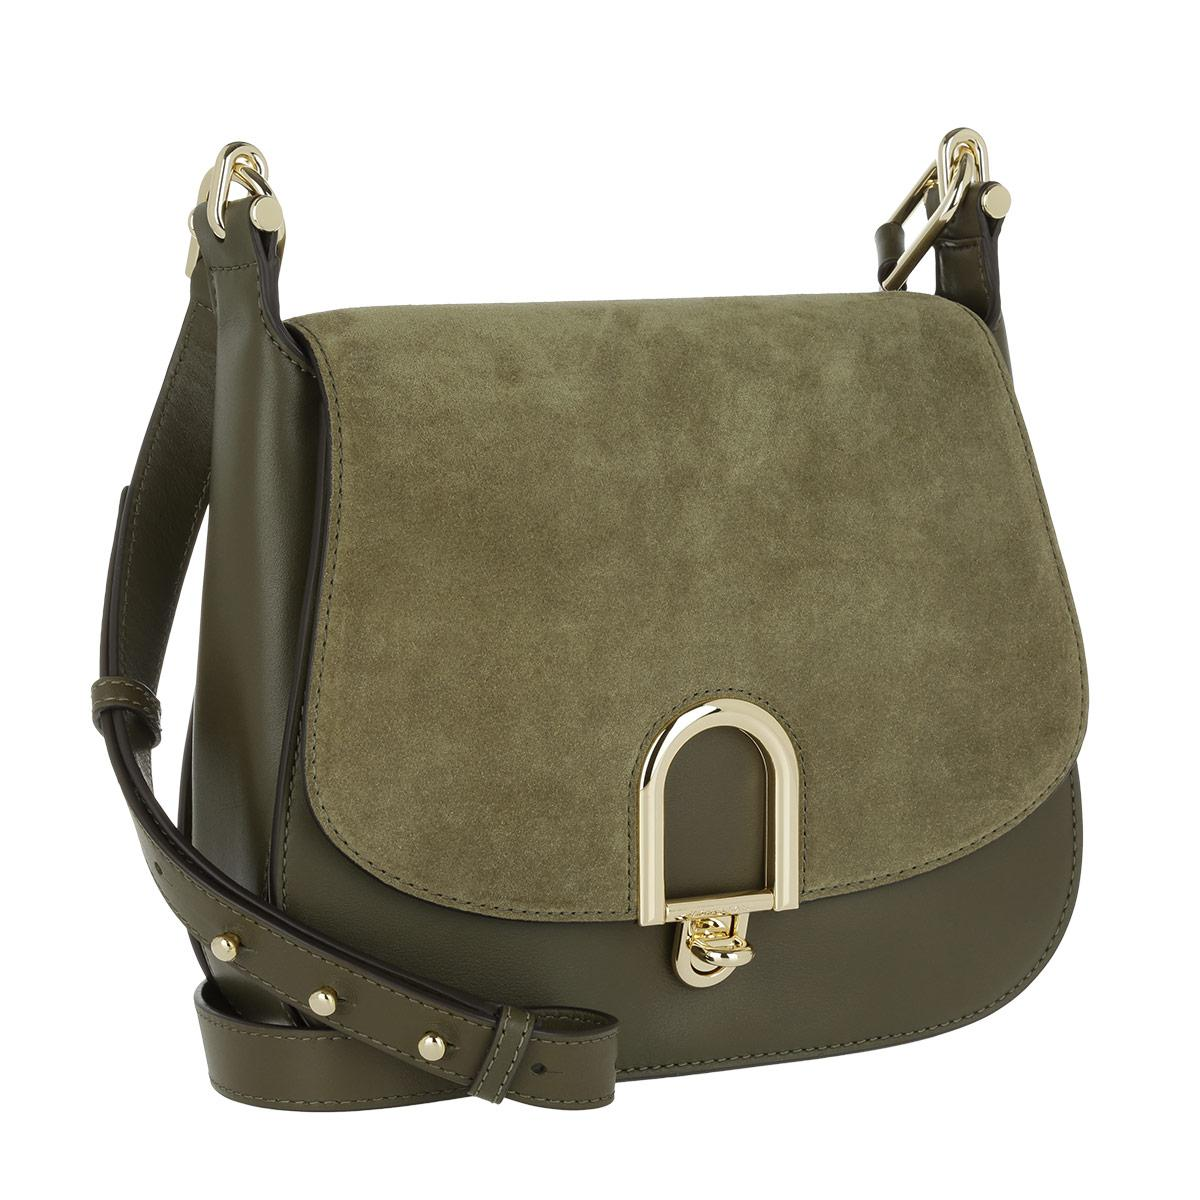 6db784861a18 Gallery. Previously sold at  Fashionette · Women s Saddle Bags